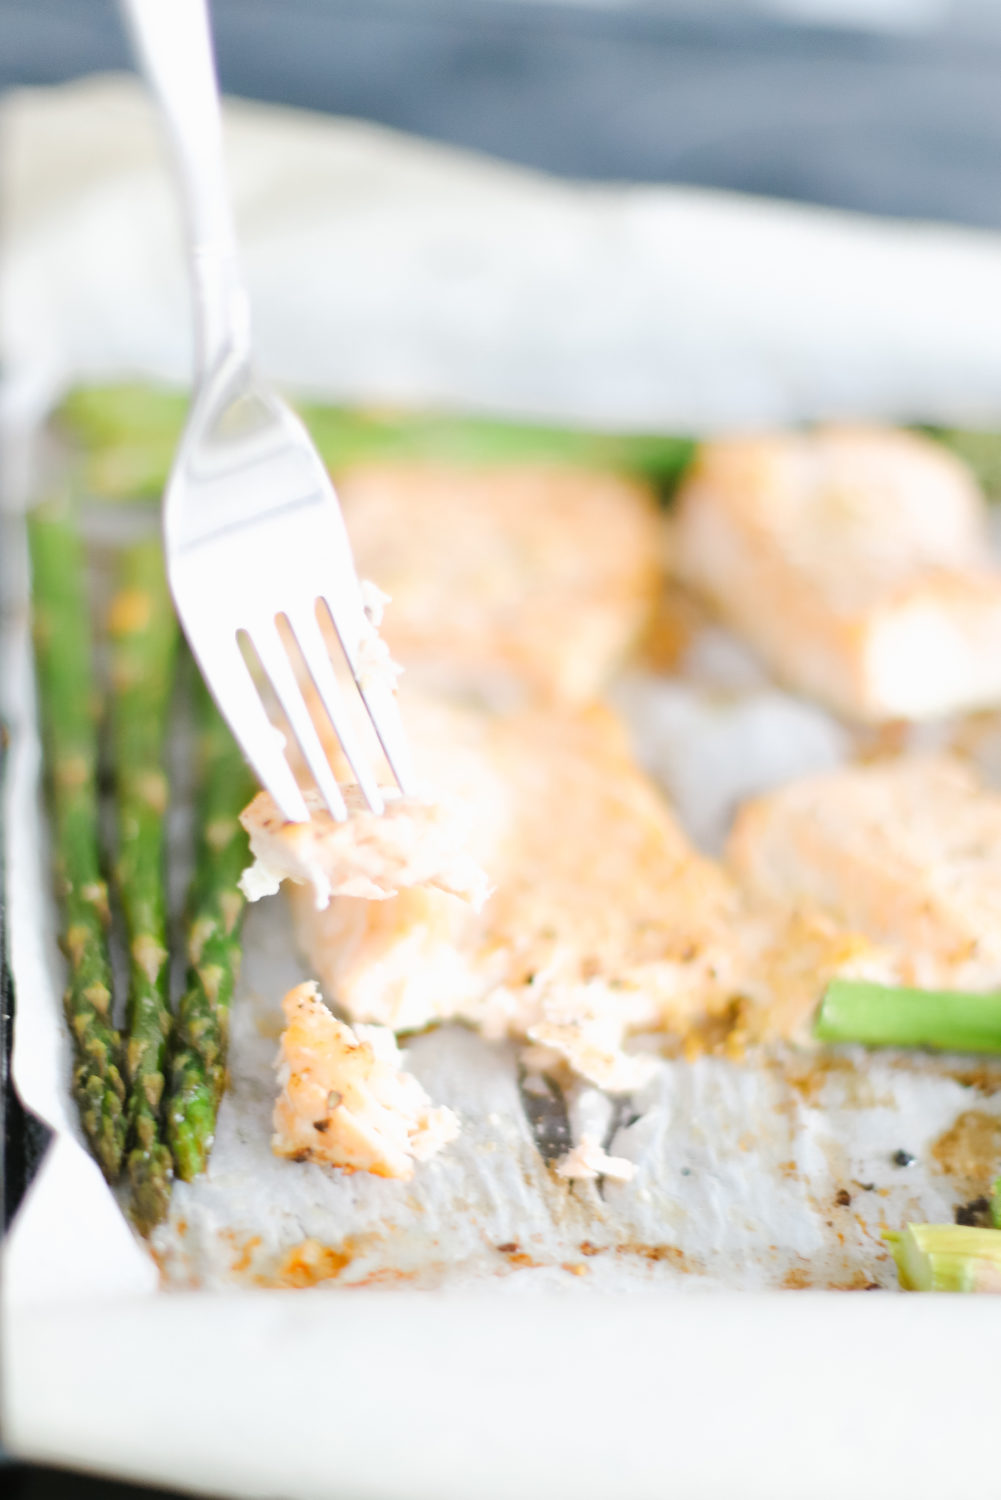 Quick, healthy, and made with mouthwatering ingredients. A clean-eating dinner recipe that's keto, low carb, paleo friendly, and simple for anyone to make. Seafood Dinner | One Pan Dinner | One Sheet | Oven Baked Salmon | Quick Dinners | Easy Dinner Recipes | Healthy | Low Carbs | Weight Loss | Clean Eating | Family Recipes | Kid-Friendly